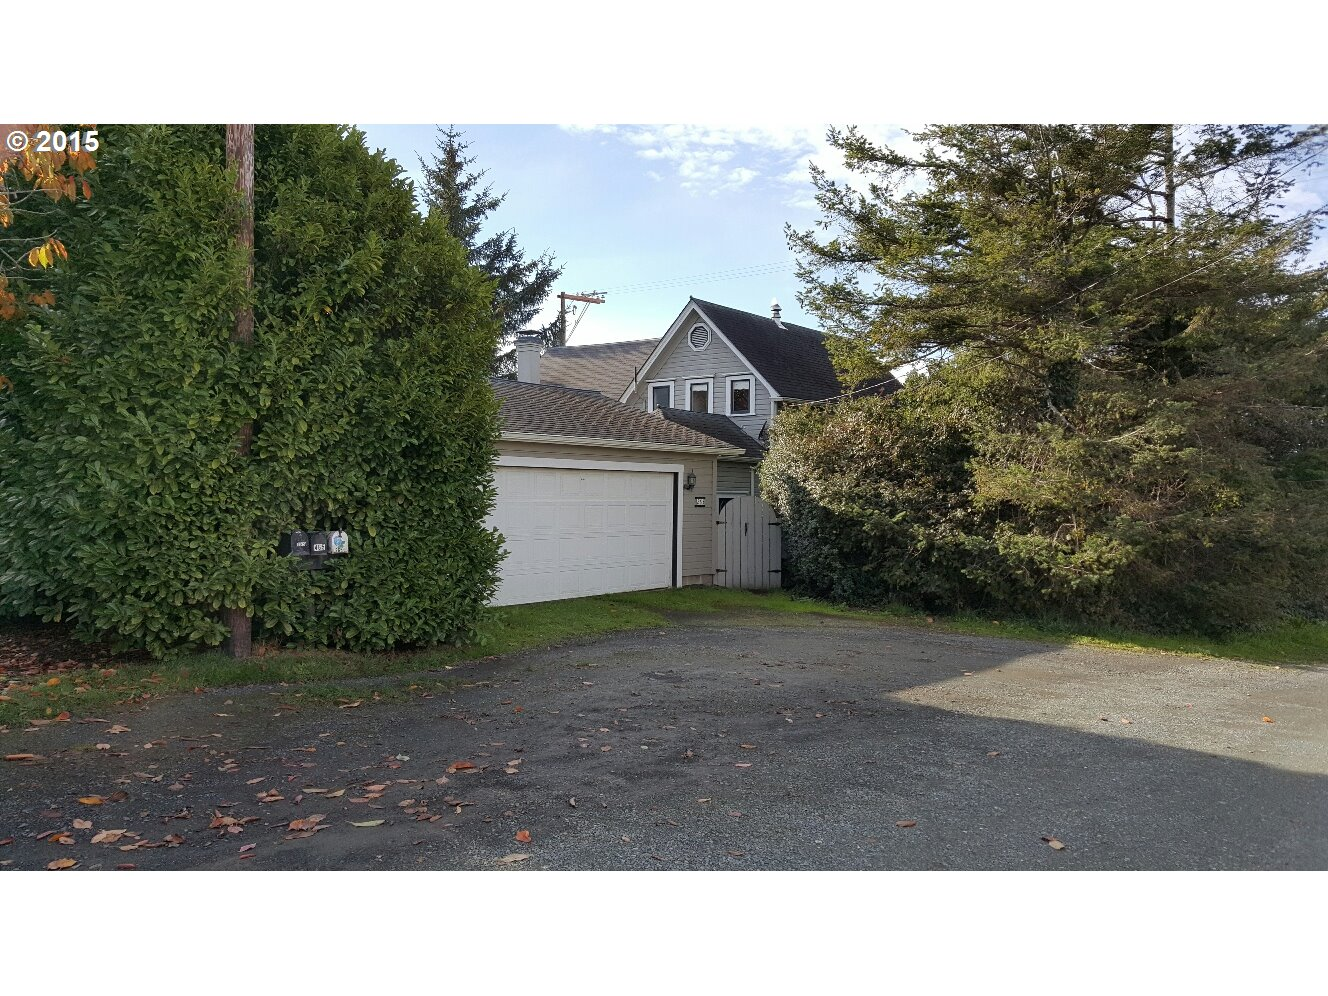 265 S Empire Bv, Coos Bay, OR